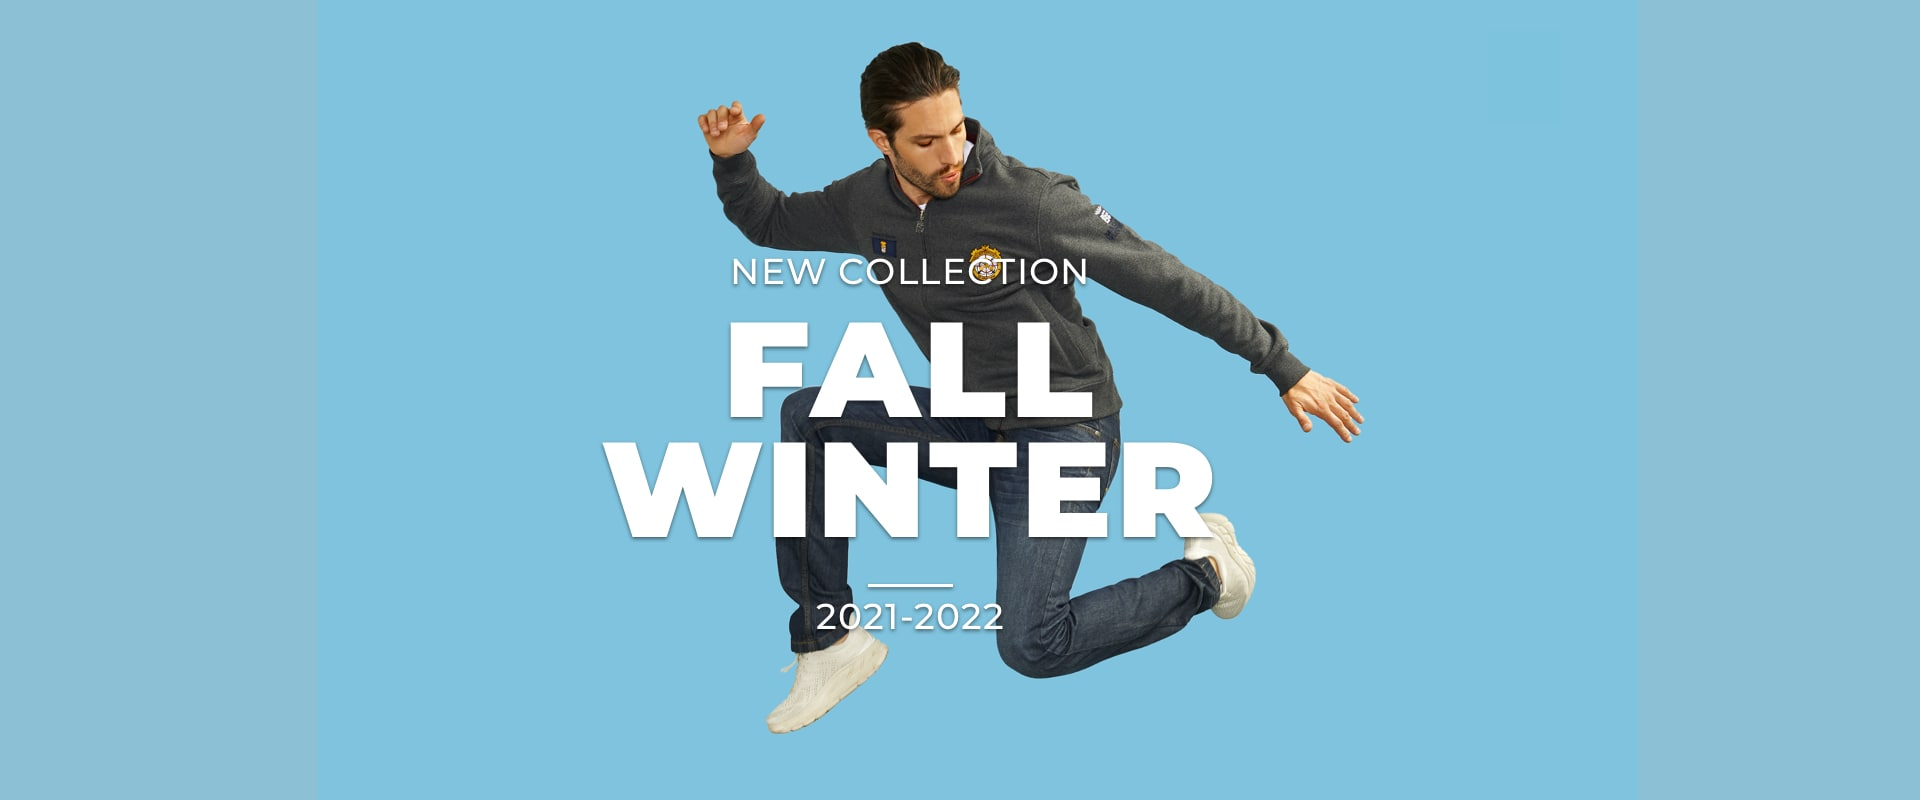 New Collection FW 2021 - 2022